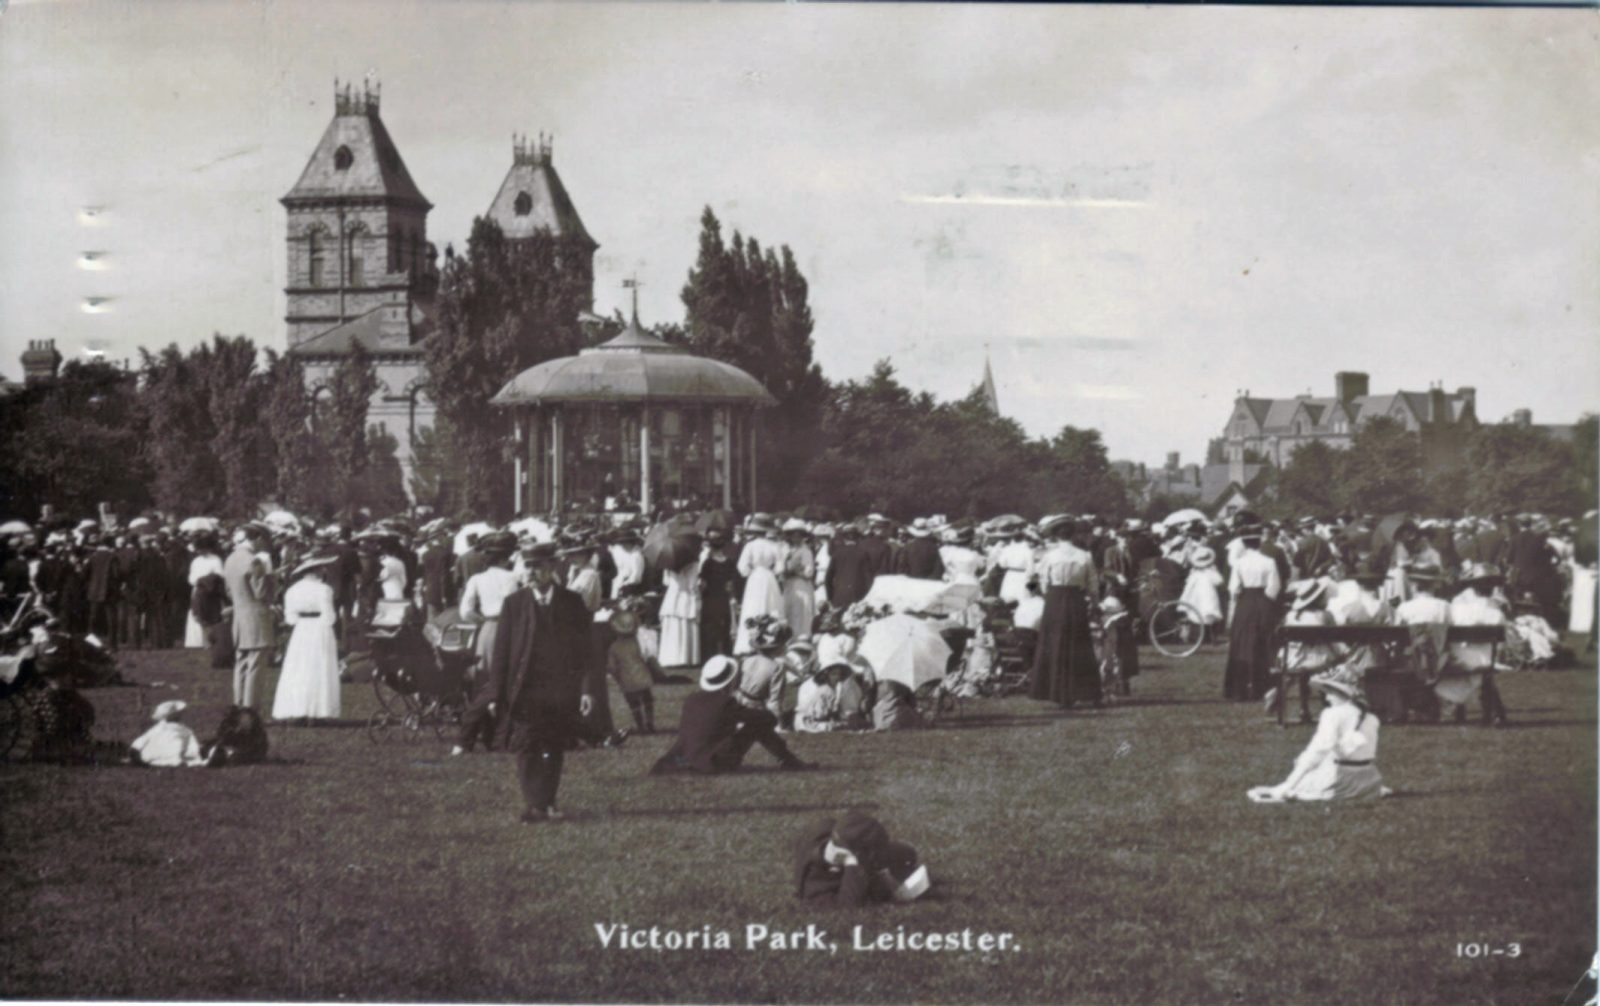 Victoria Park, Leicester. 1901-1920: Pavilion with bandstand and crowd. Posted 1904-10 (File:1070)